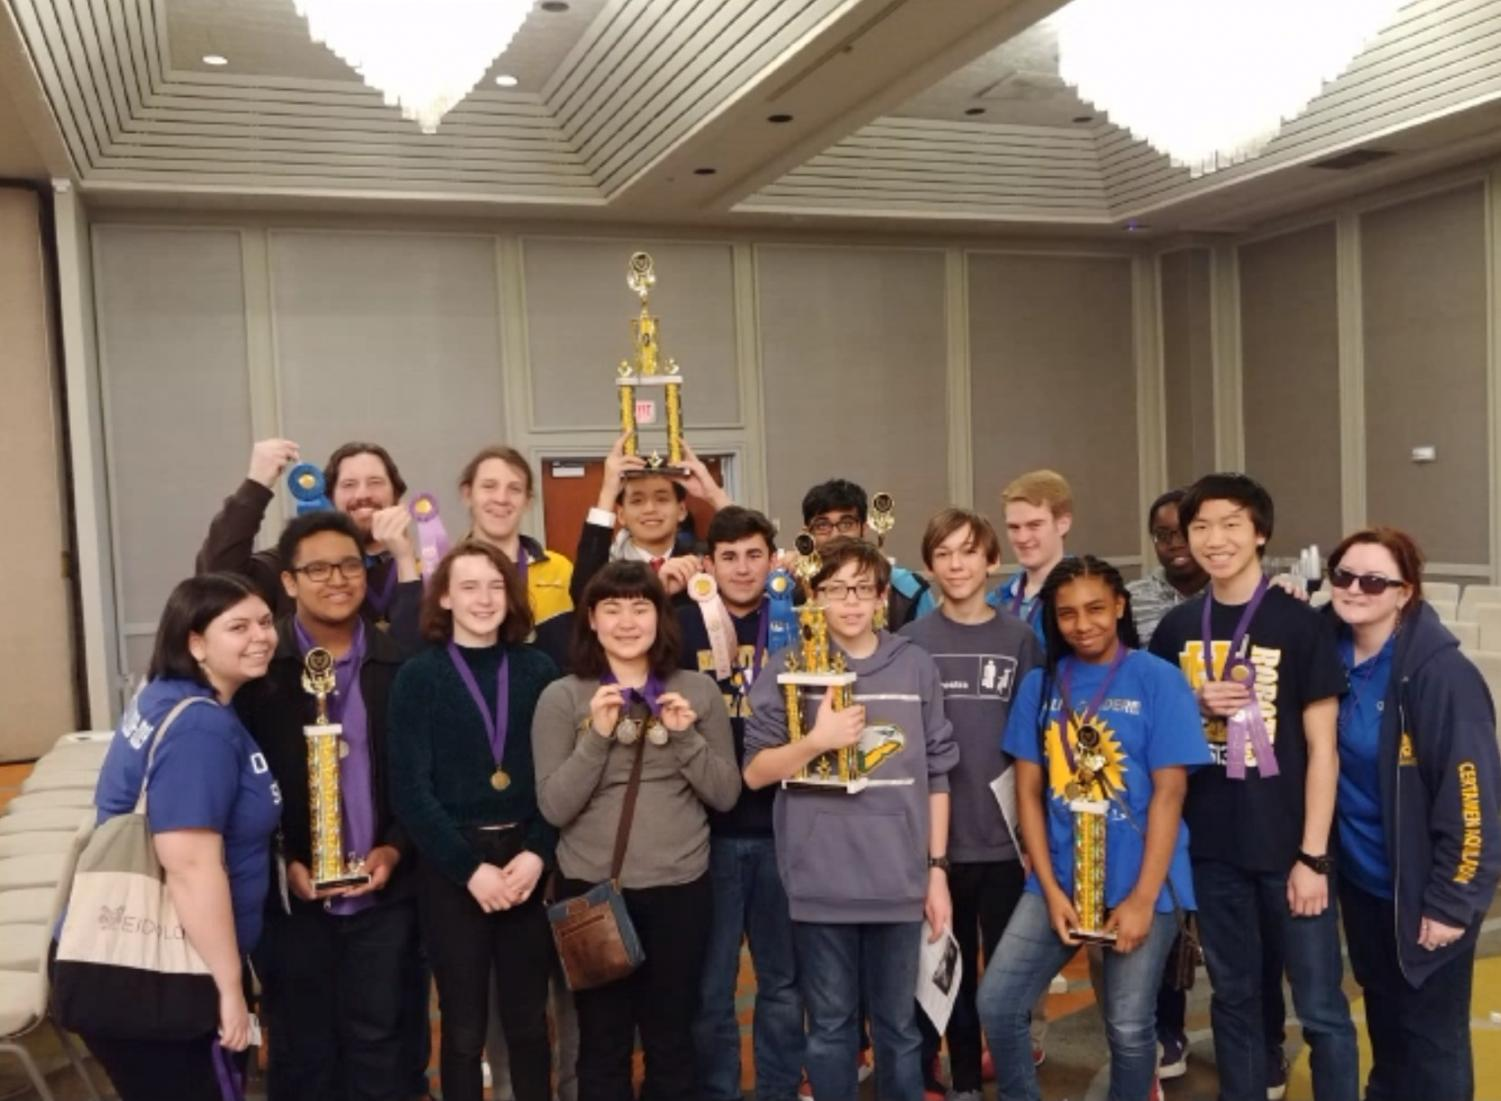 The WHHS Junior Classical League members who attended the convention pose with their awards on the final day of the convention. This convention is the only state-wide event that the WHHS JCL attends during the school year.